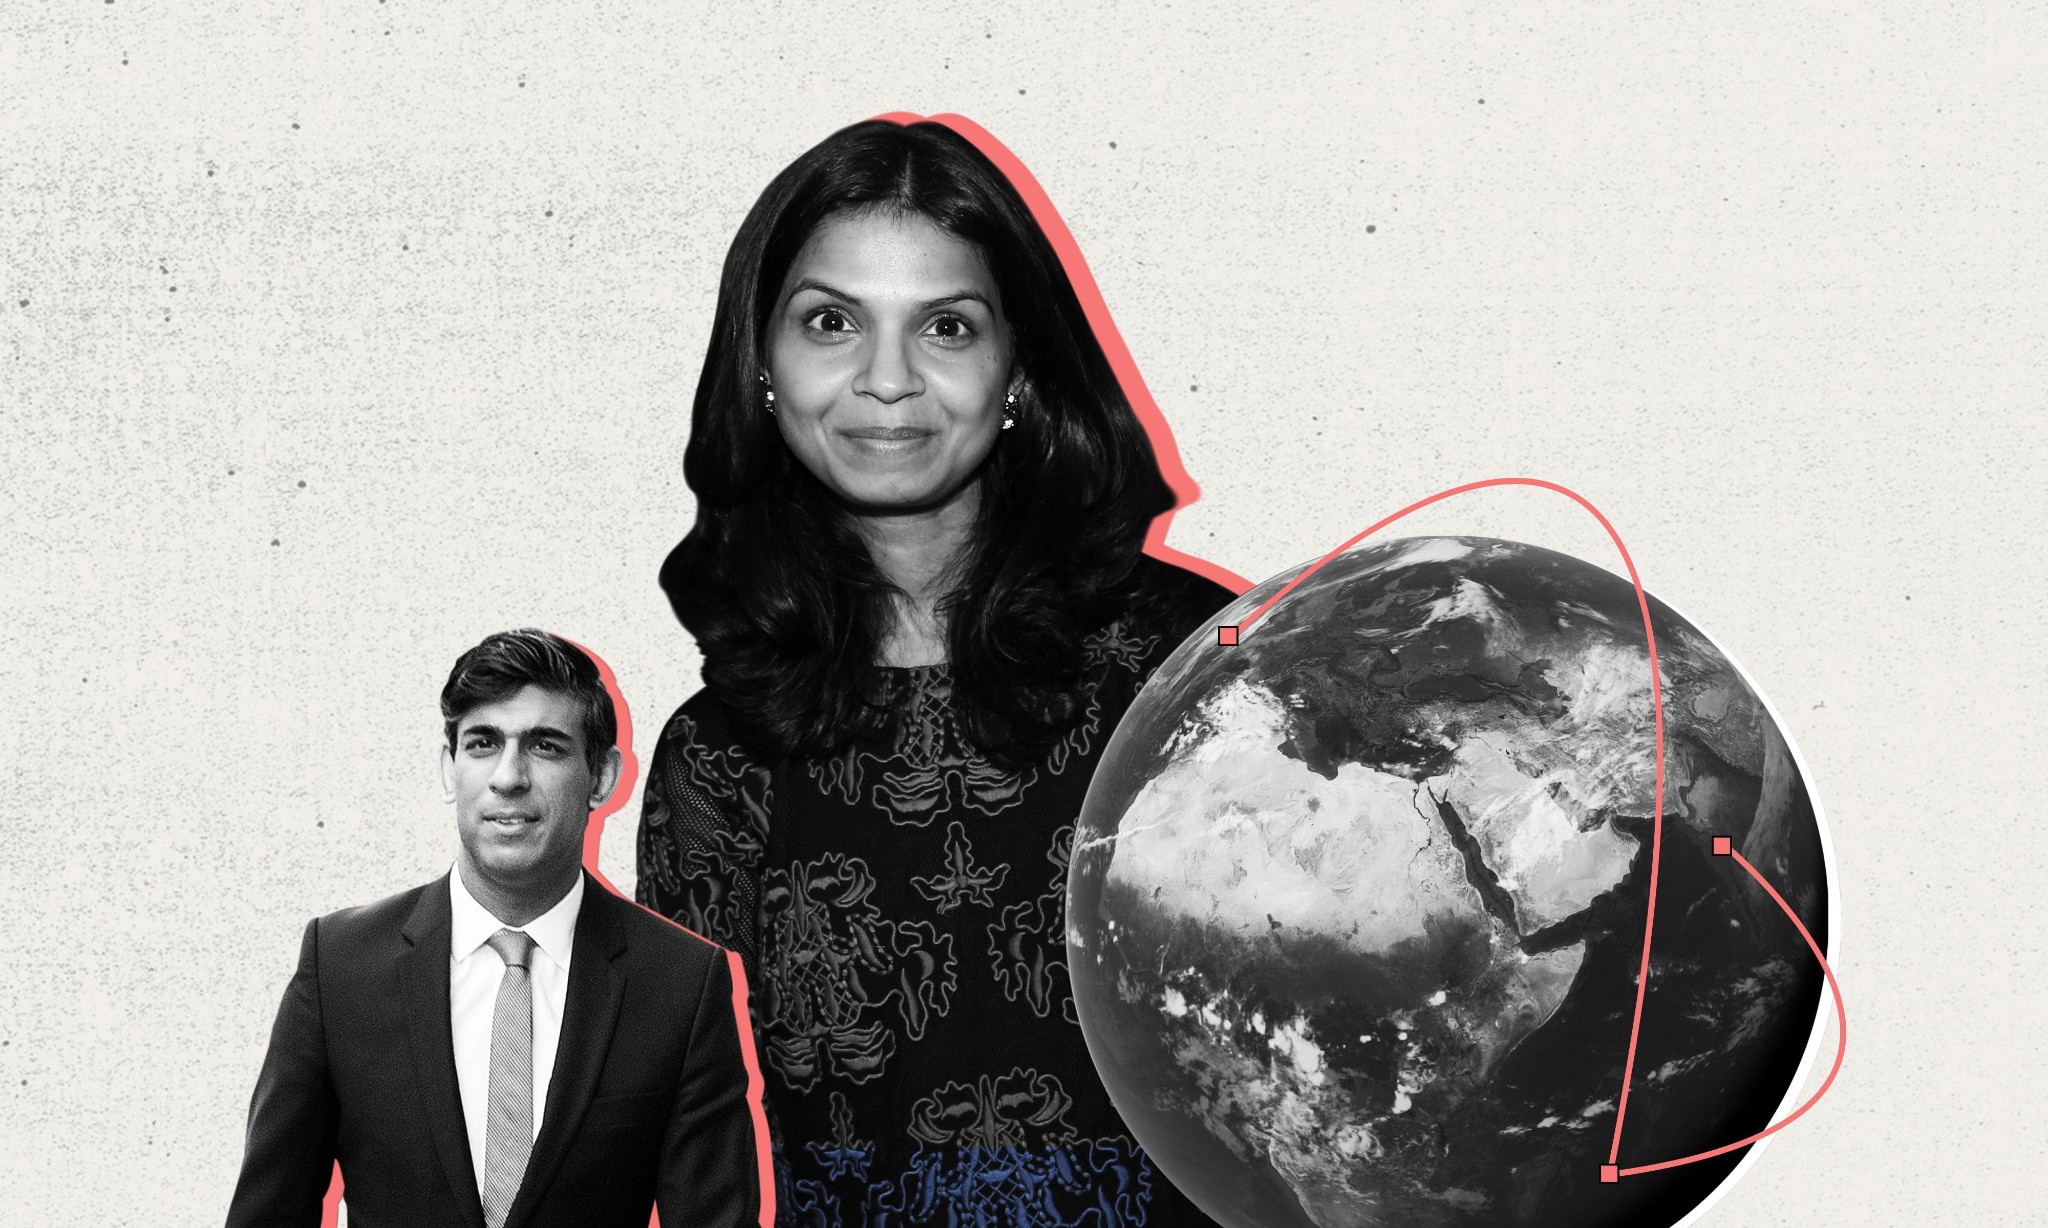 Rishi Sunak's wife owns part of firm that funnelled money through Mauritius